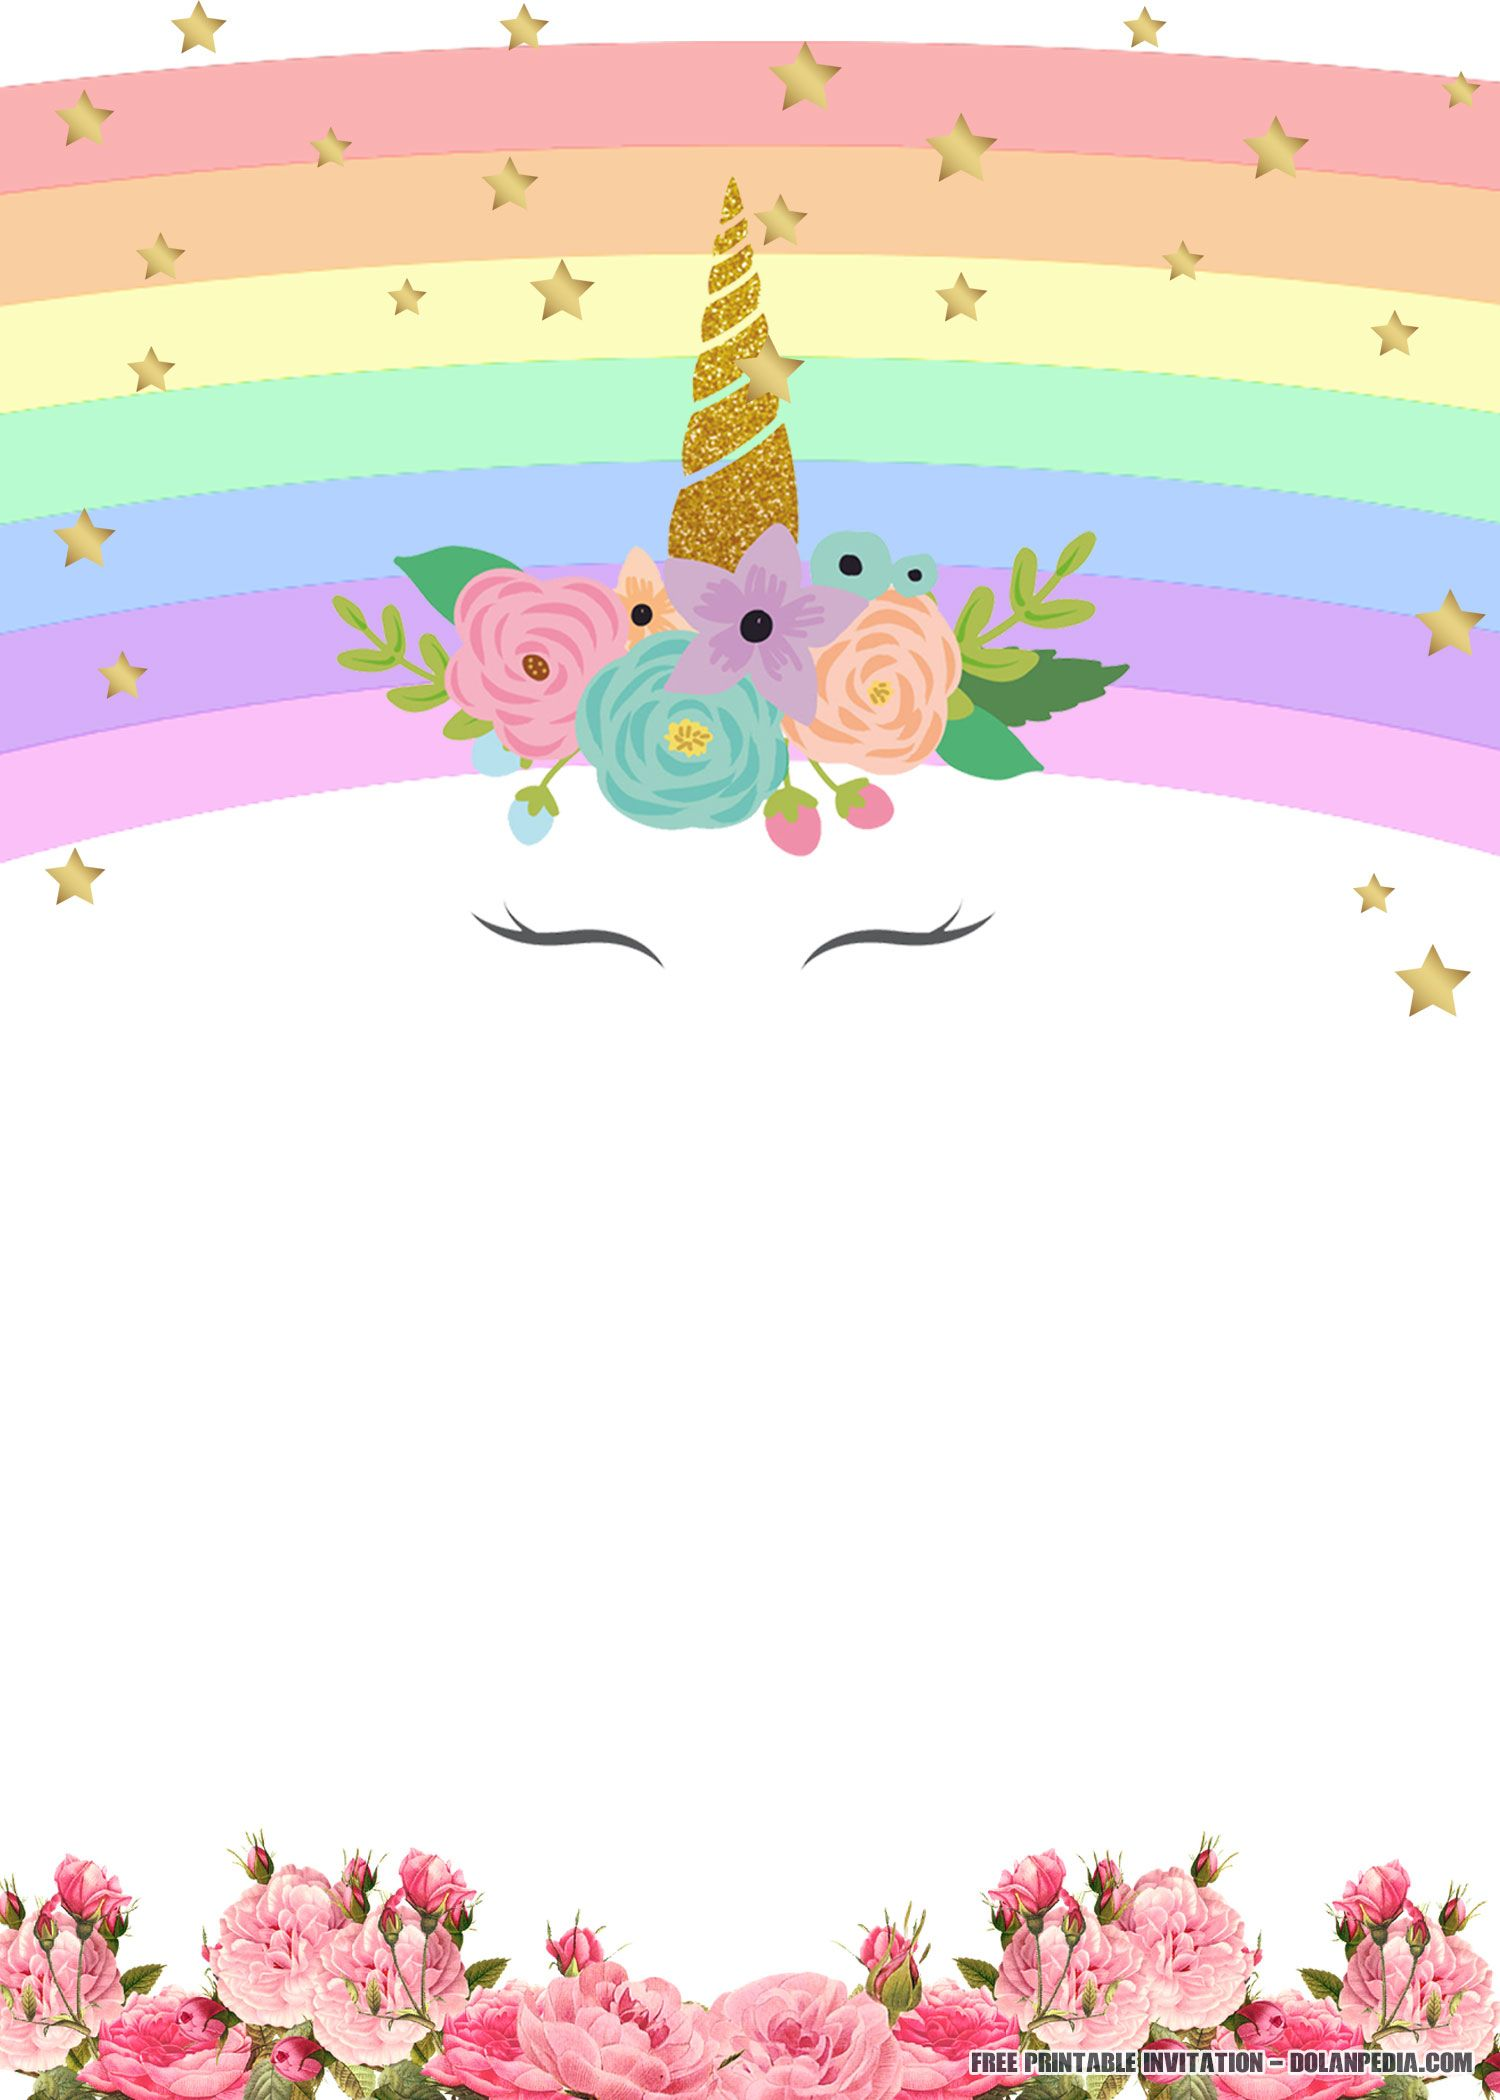 FREE Printable Unicorn Rainbow Invitation Template  DREVIO